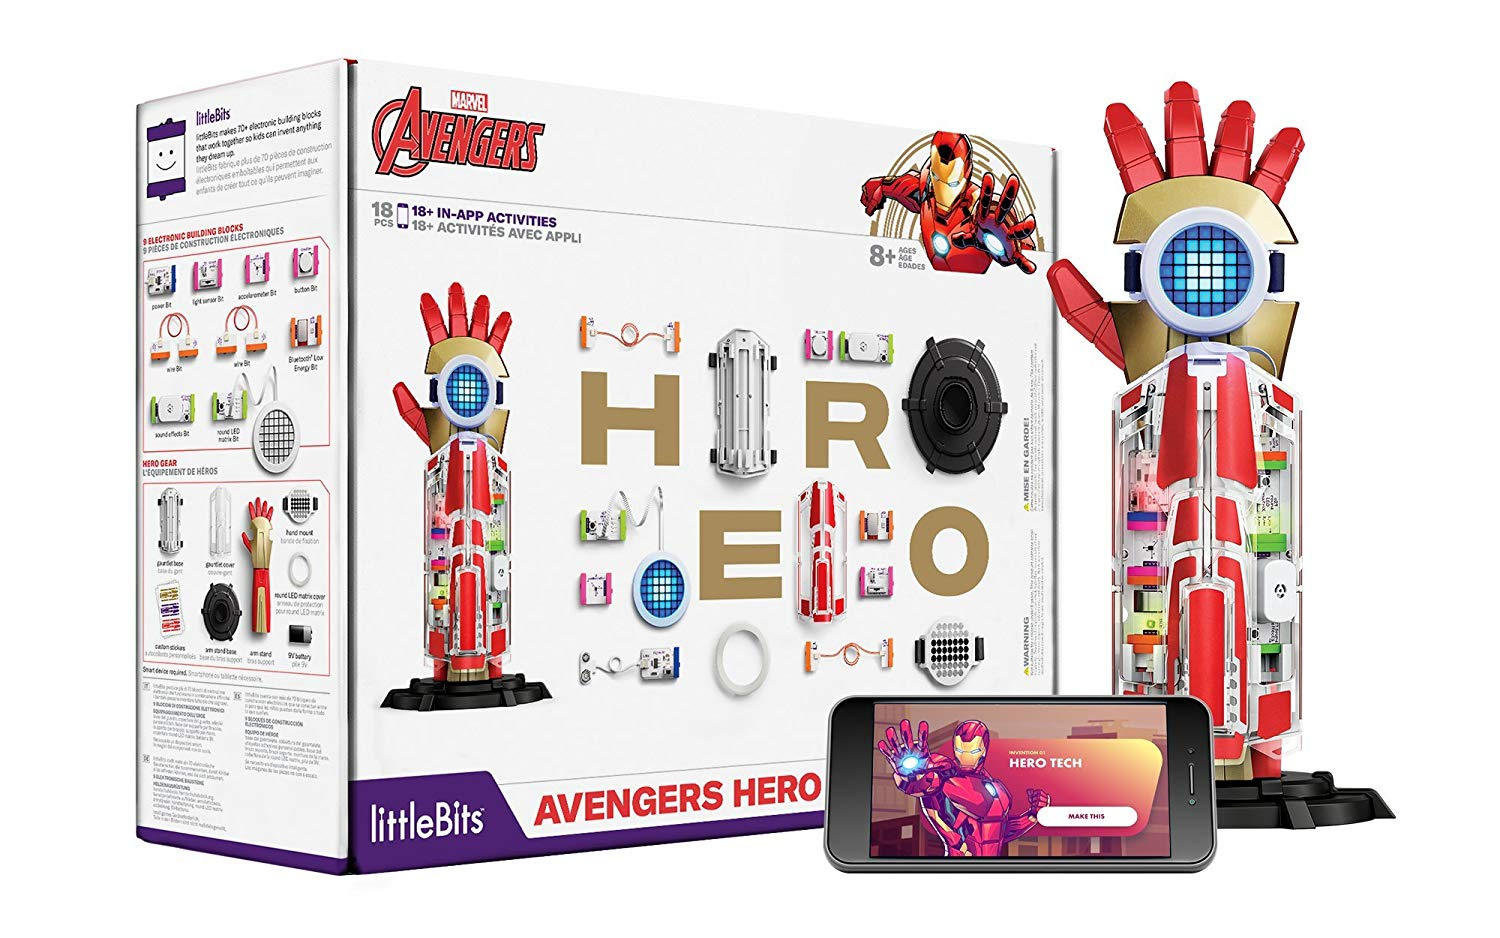 Top 2018 Christmas Toys for Amazon - LittleBits Avengers Hero Inventor Kit